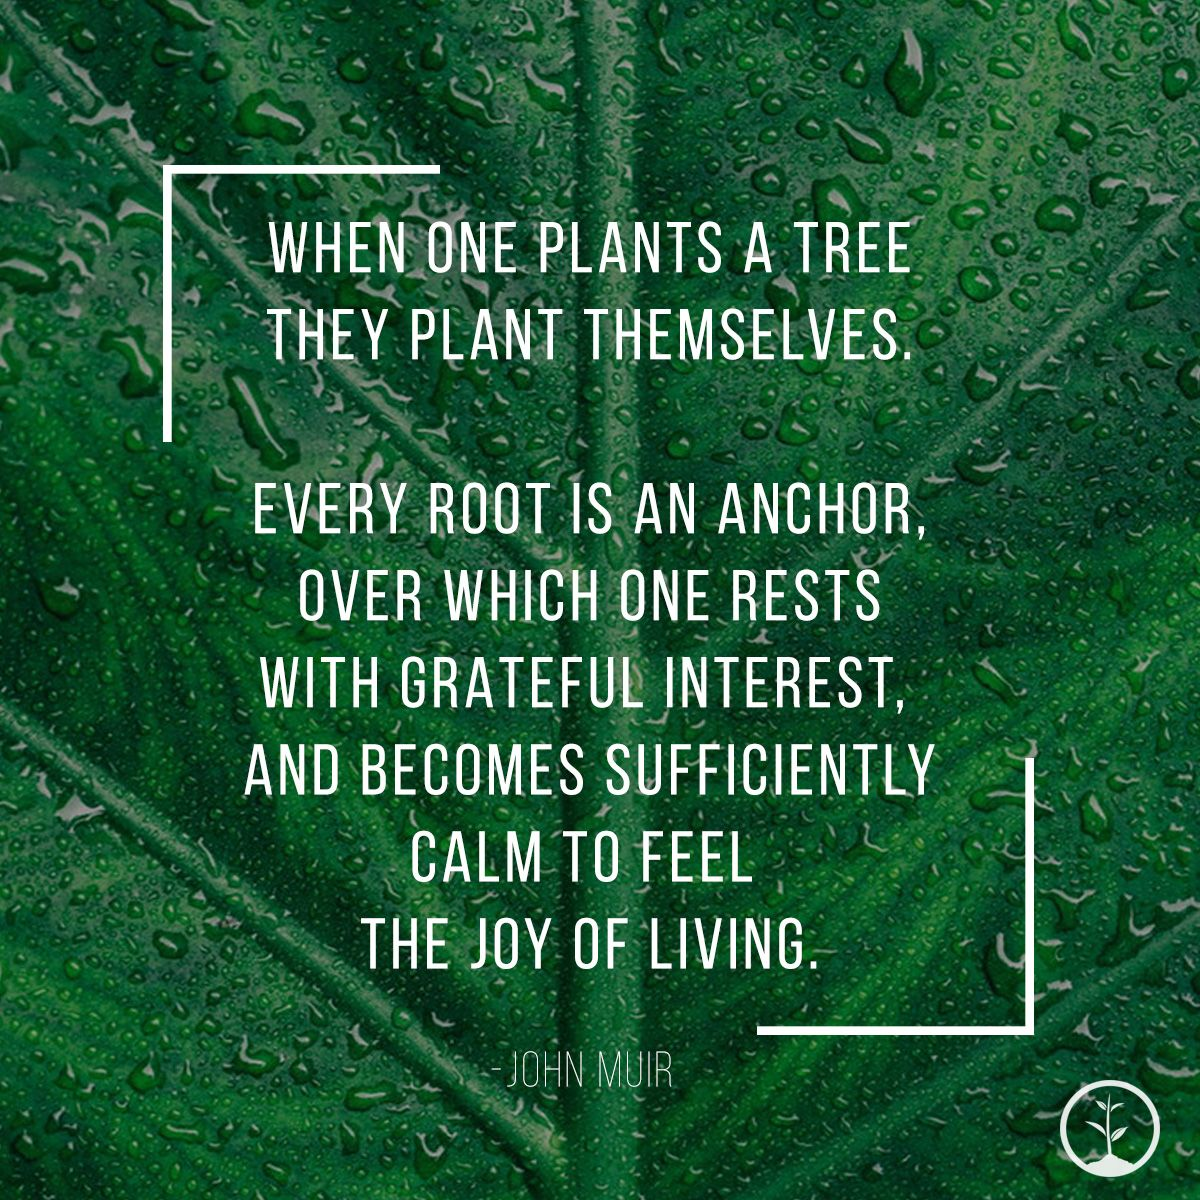 John Muir Tree Quote Tree quotes, John muir, Nature quotes